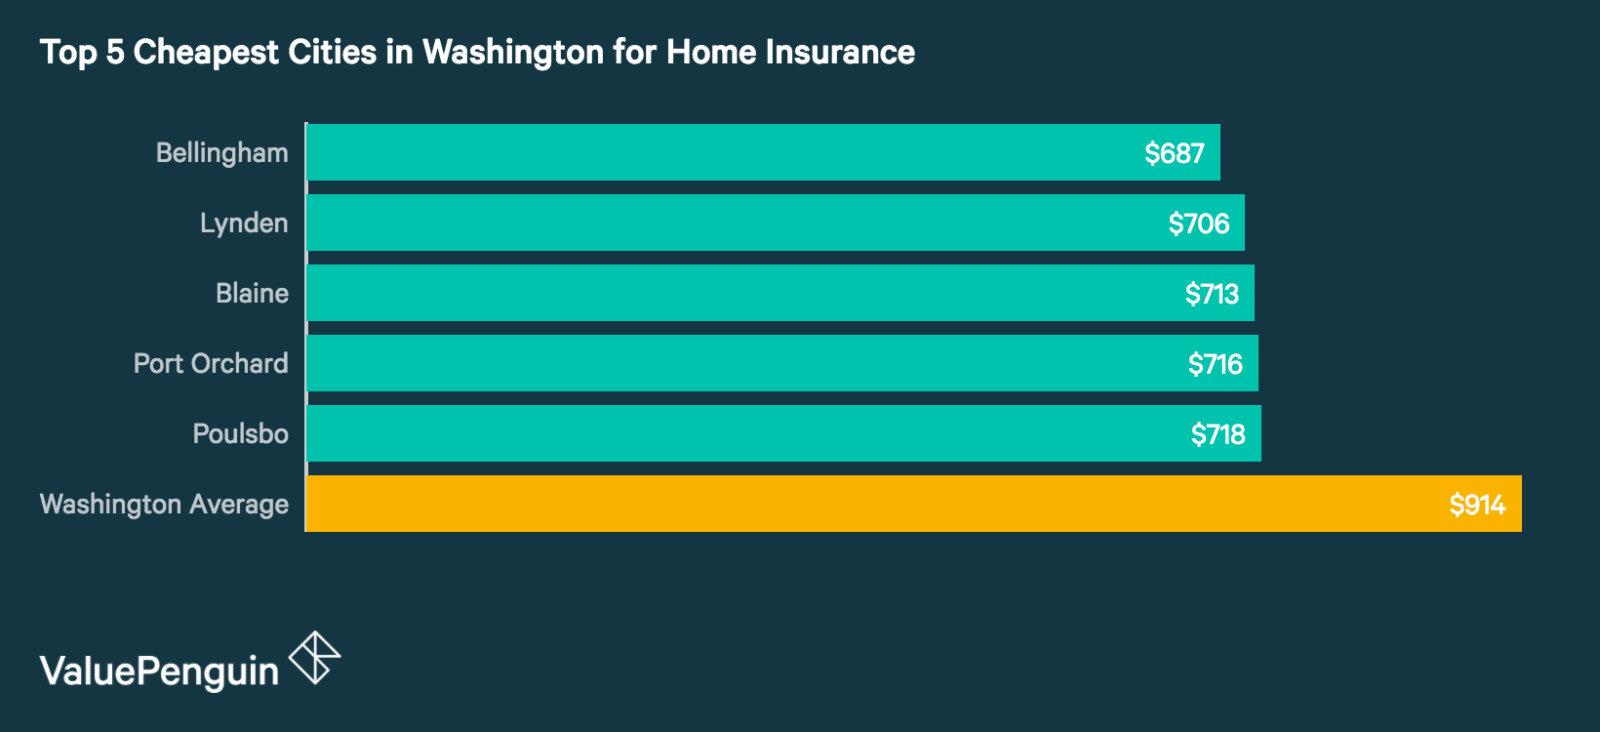 Top 5 Cheapest Cities in Washington for Homeowners Insurance